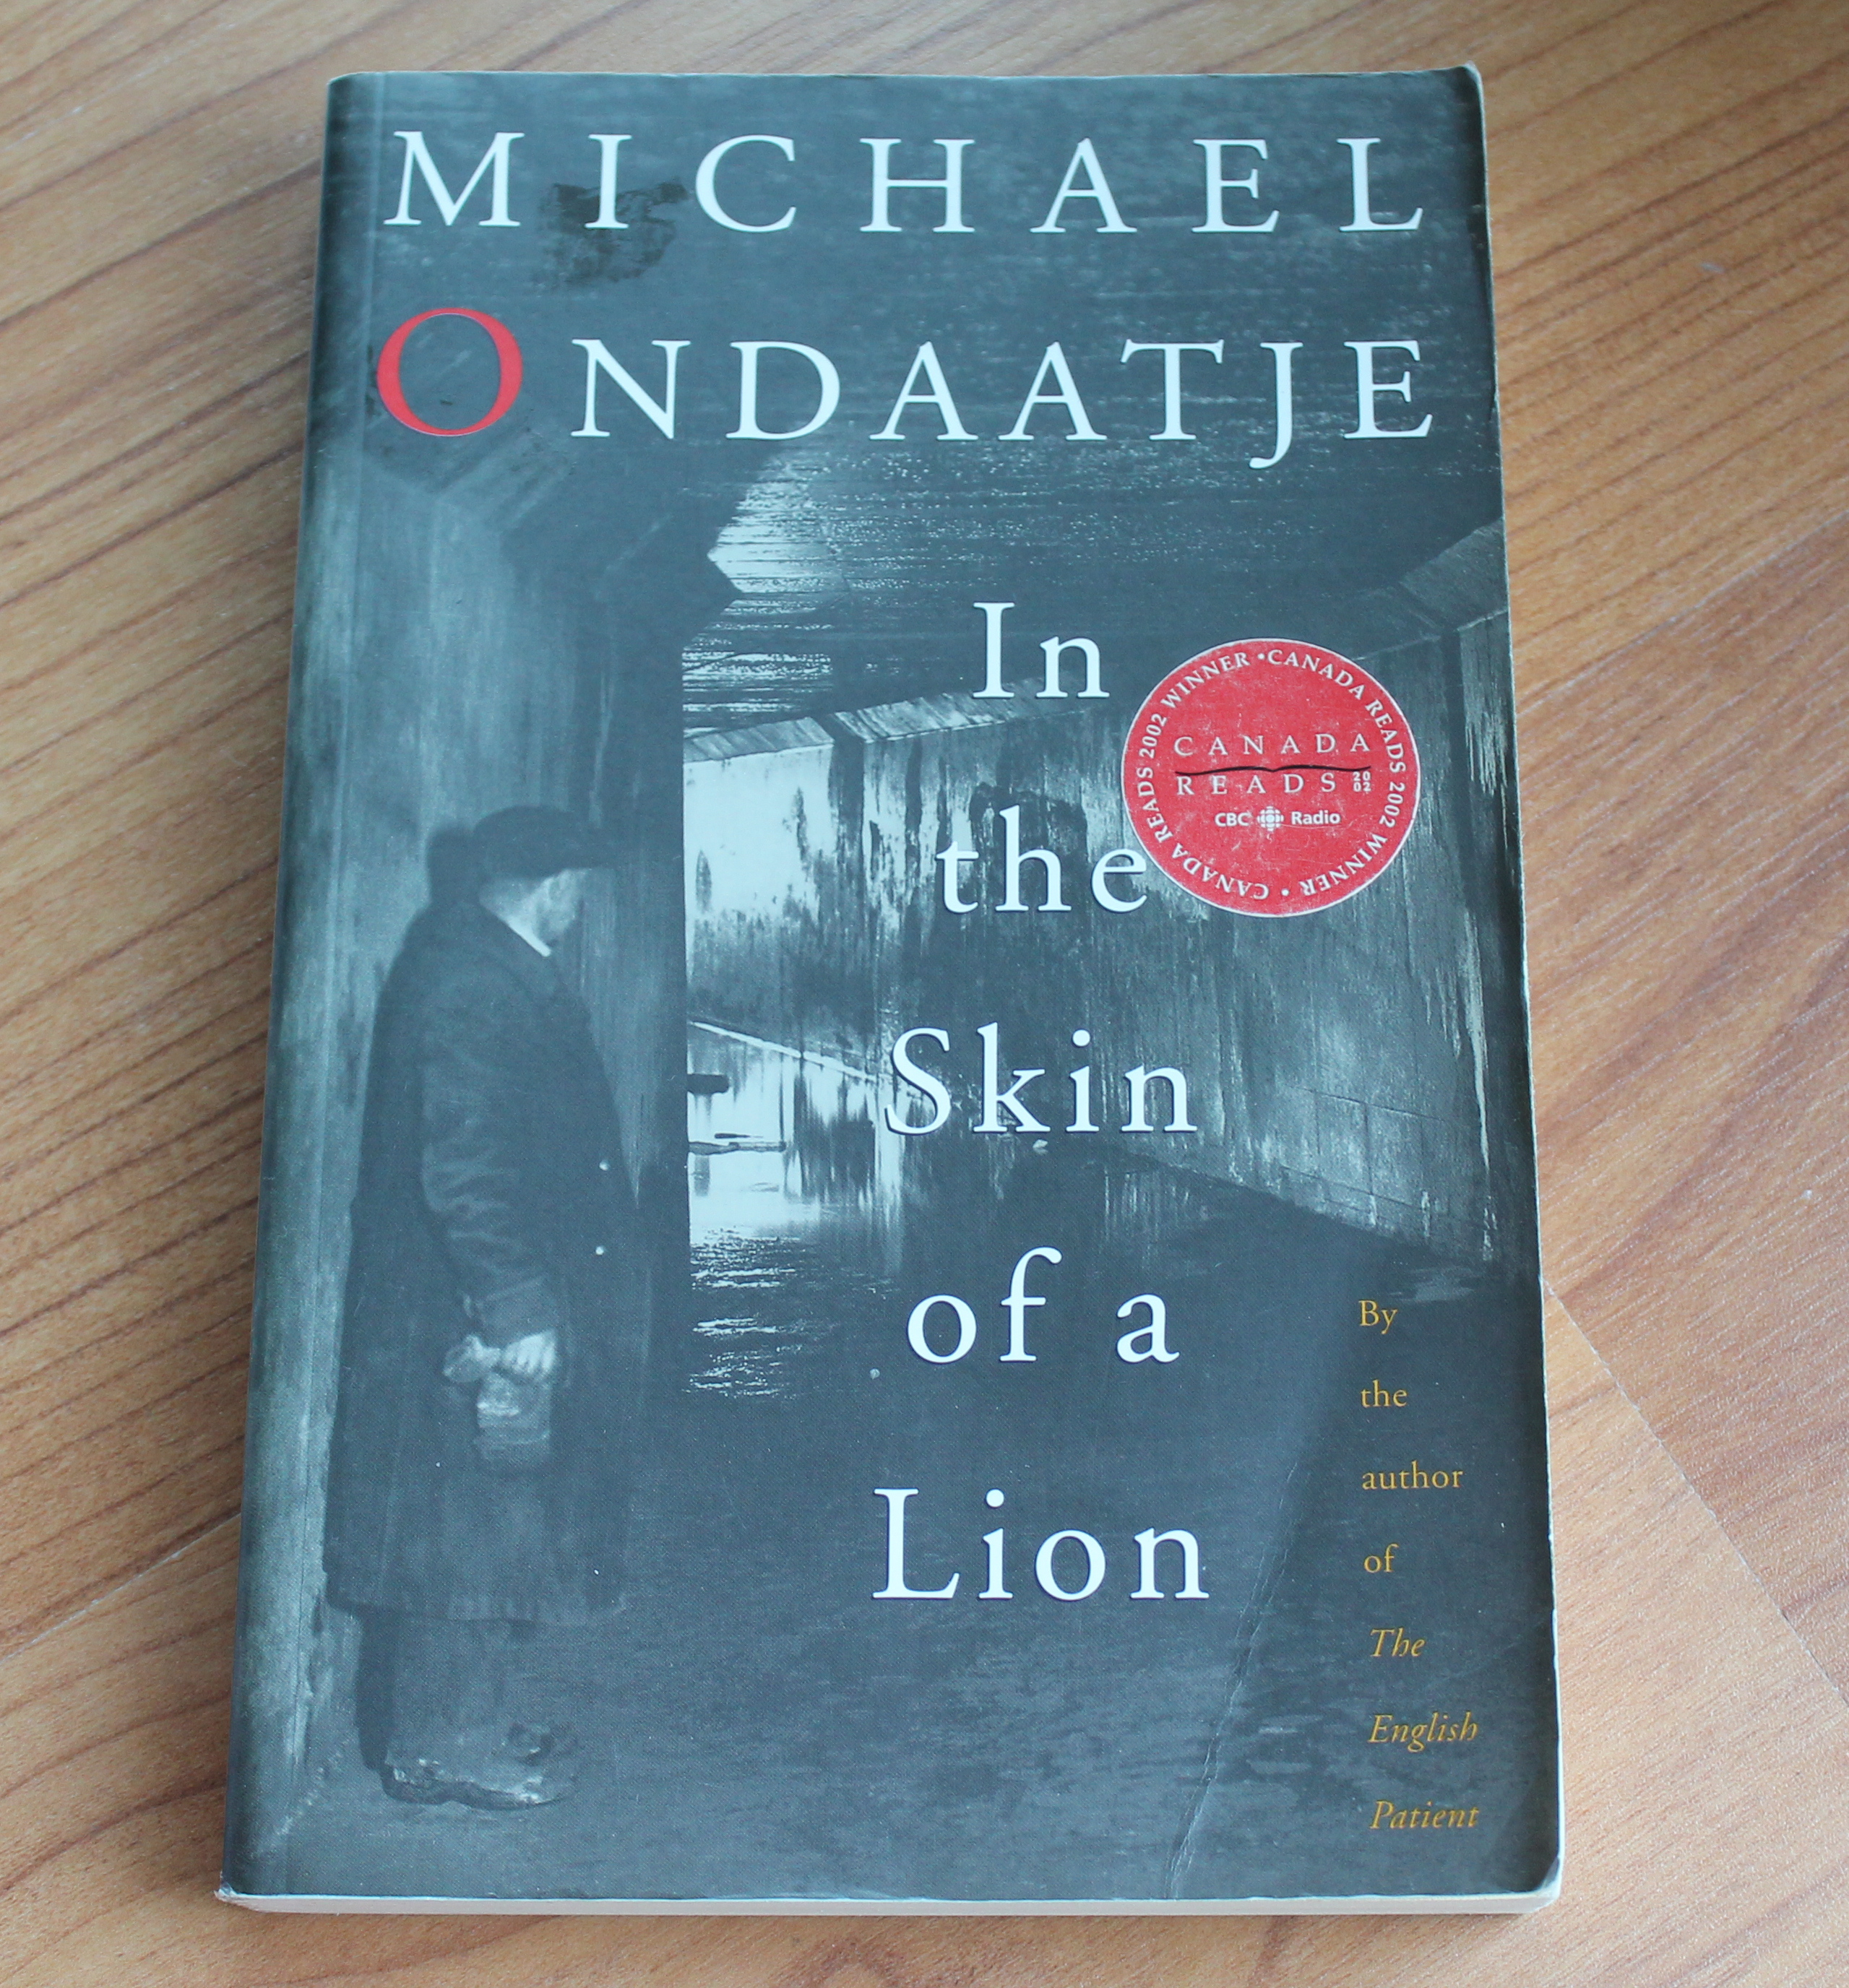 an analysis of michael ondaatjes book skin of a lion